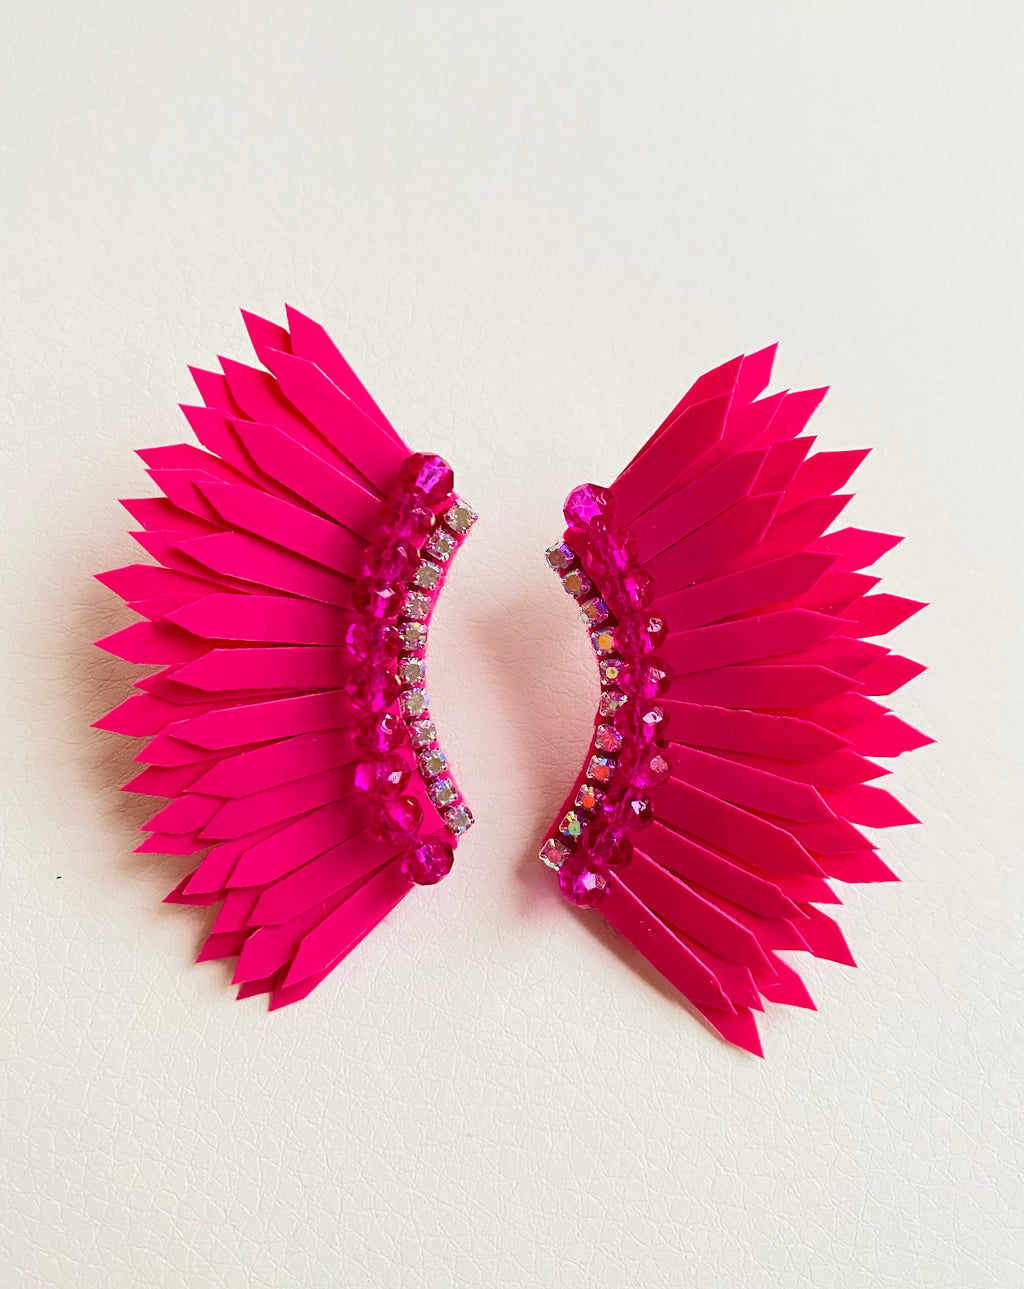 Hot pink wing earrings